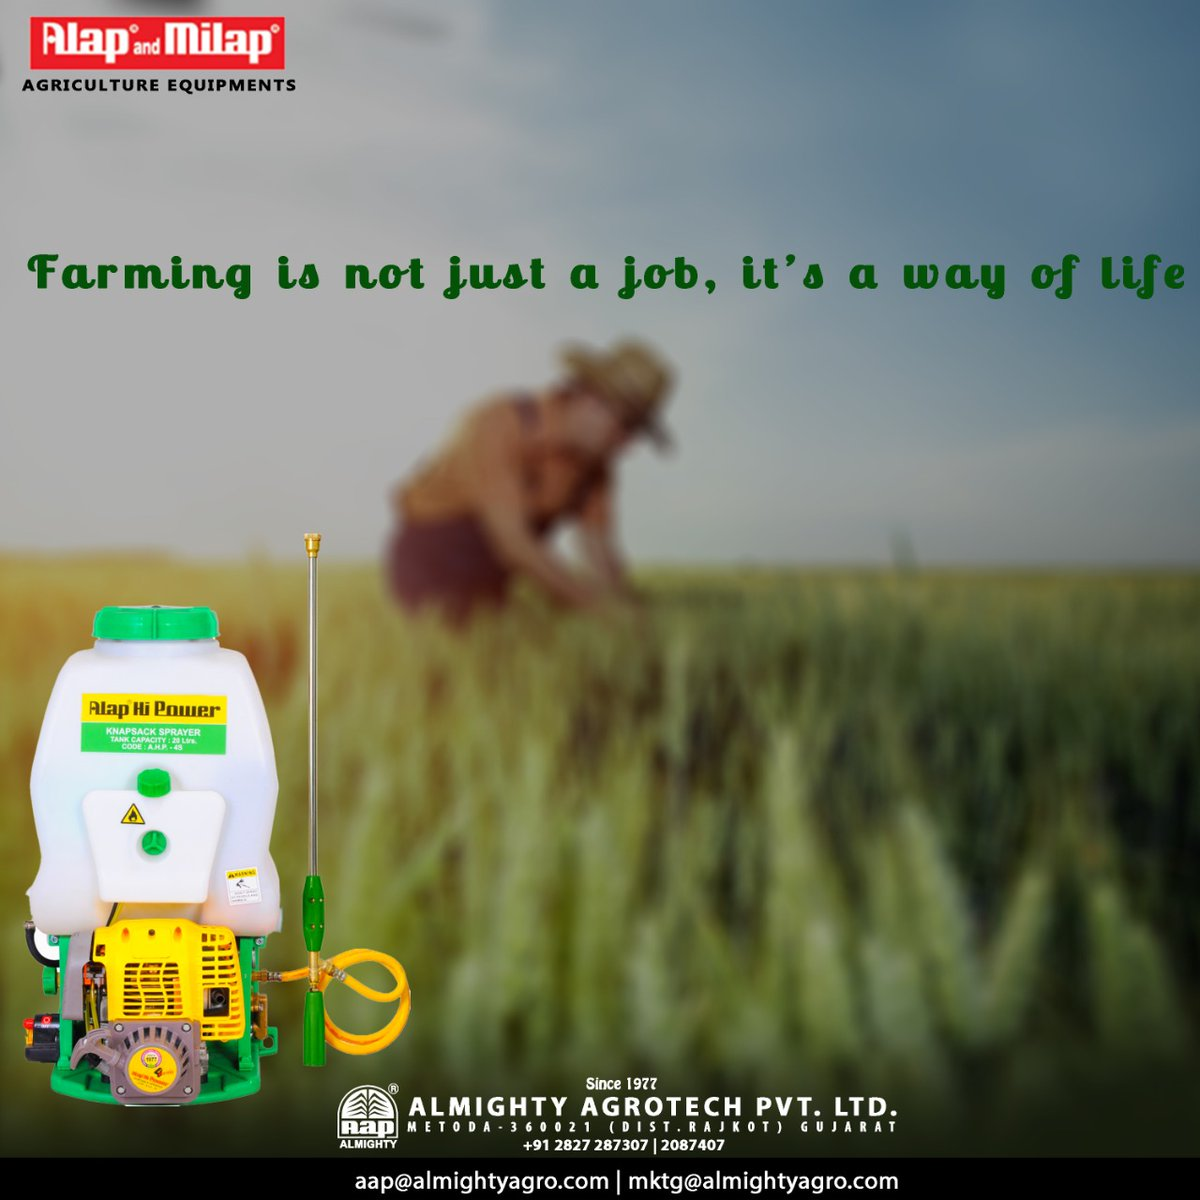 Farming is not just a job, it's a way of life . . #Sprayer #Agriculture #Sprayers #Spraying #Agricultural #Agro #Farming #Farmlife #Tractor #Agri #Horticulture #Landscape #Follow #Batteryoperatedknapsacksprayer #stayhome #stayhealthy #staysafe #LocalToVocal #WeWinTogetherpic.twitter.com/hSMgbcdTki